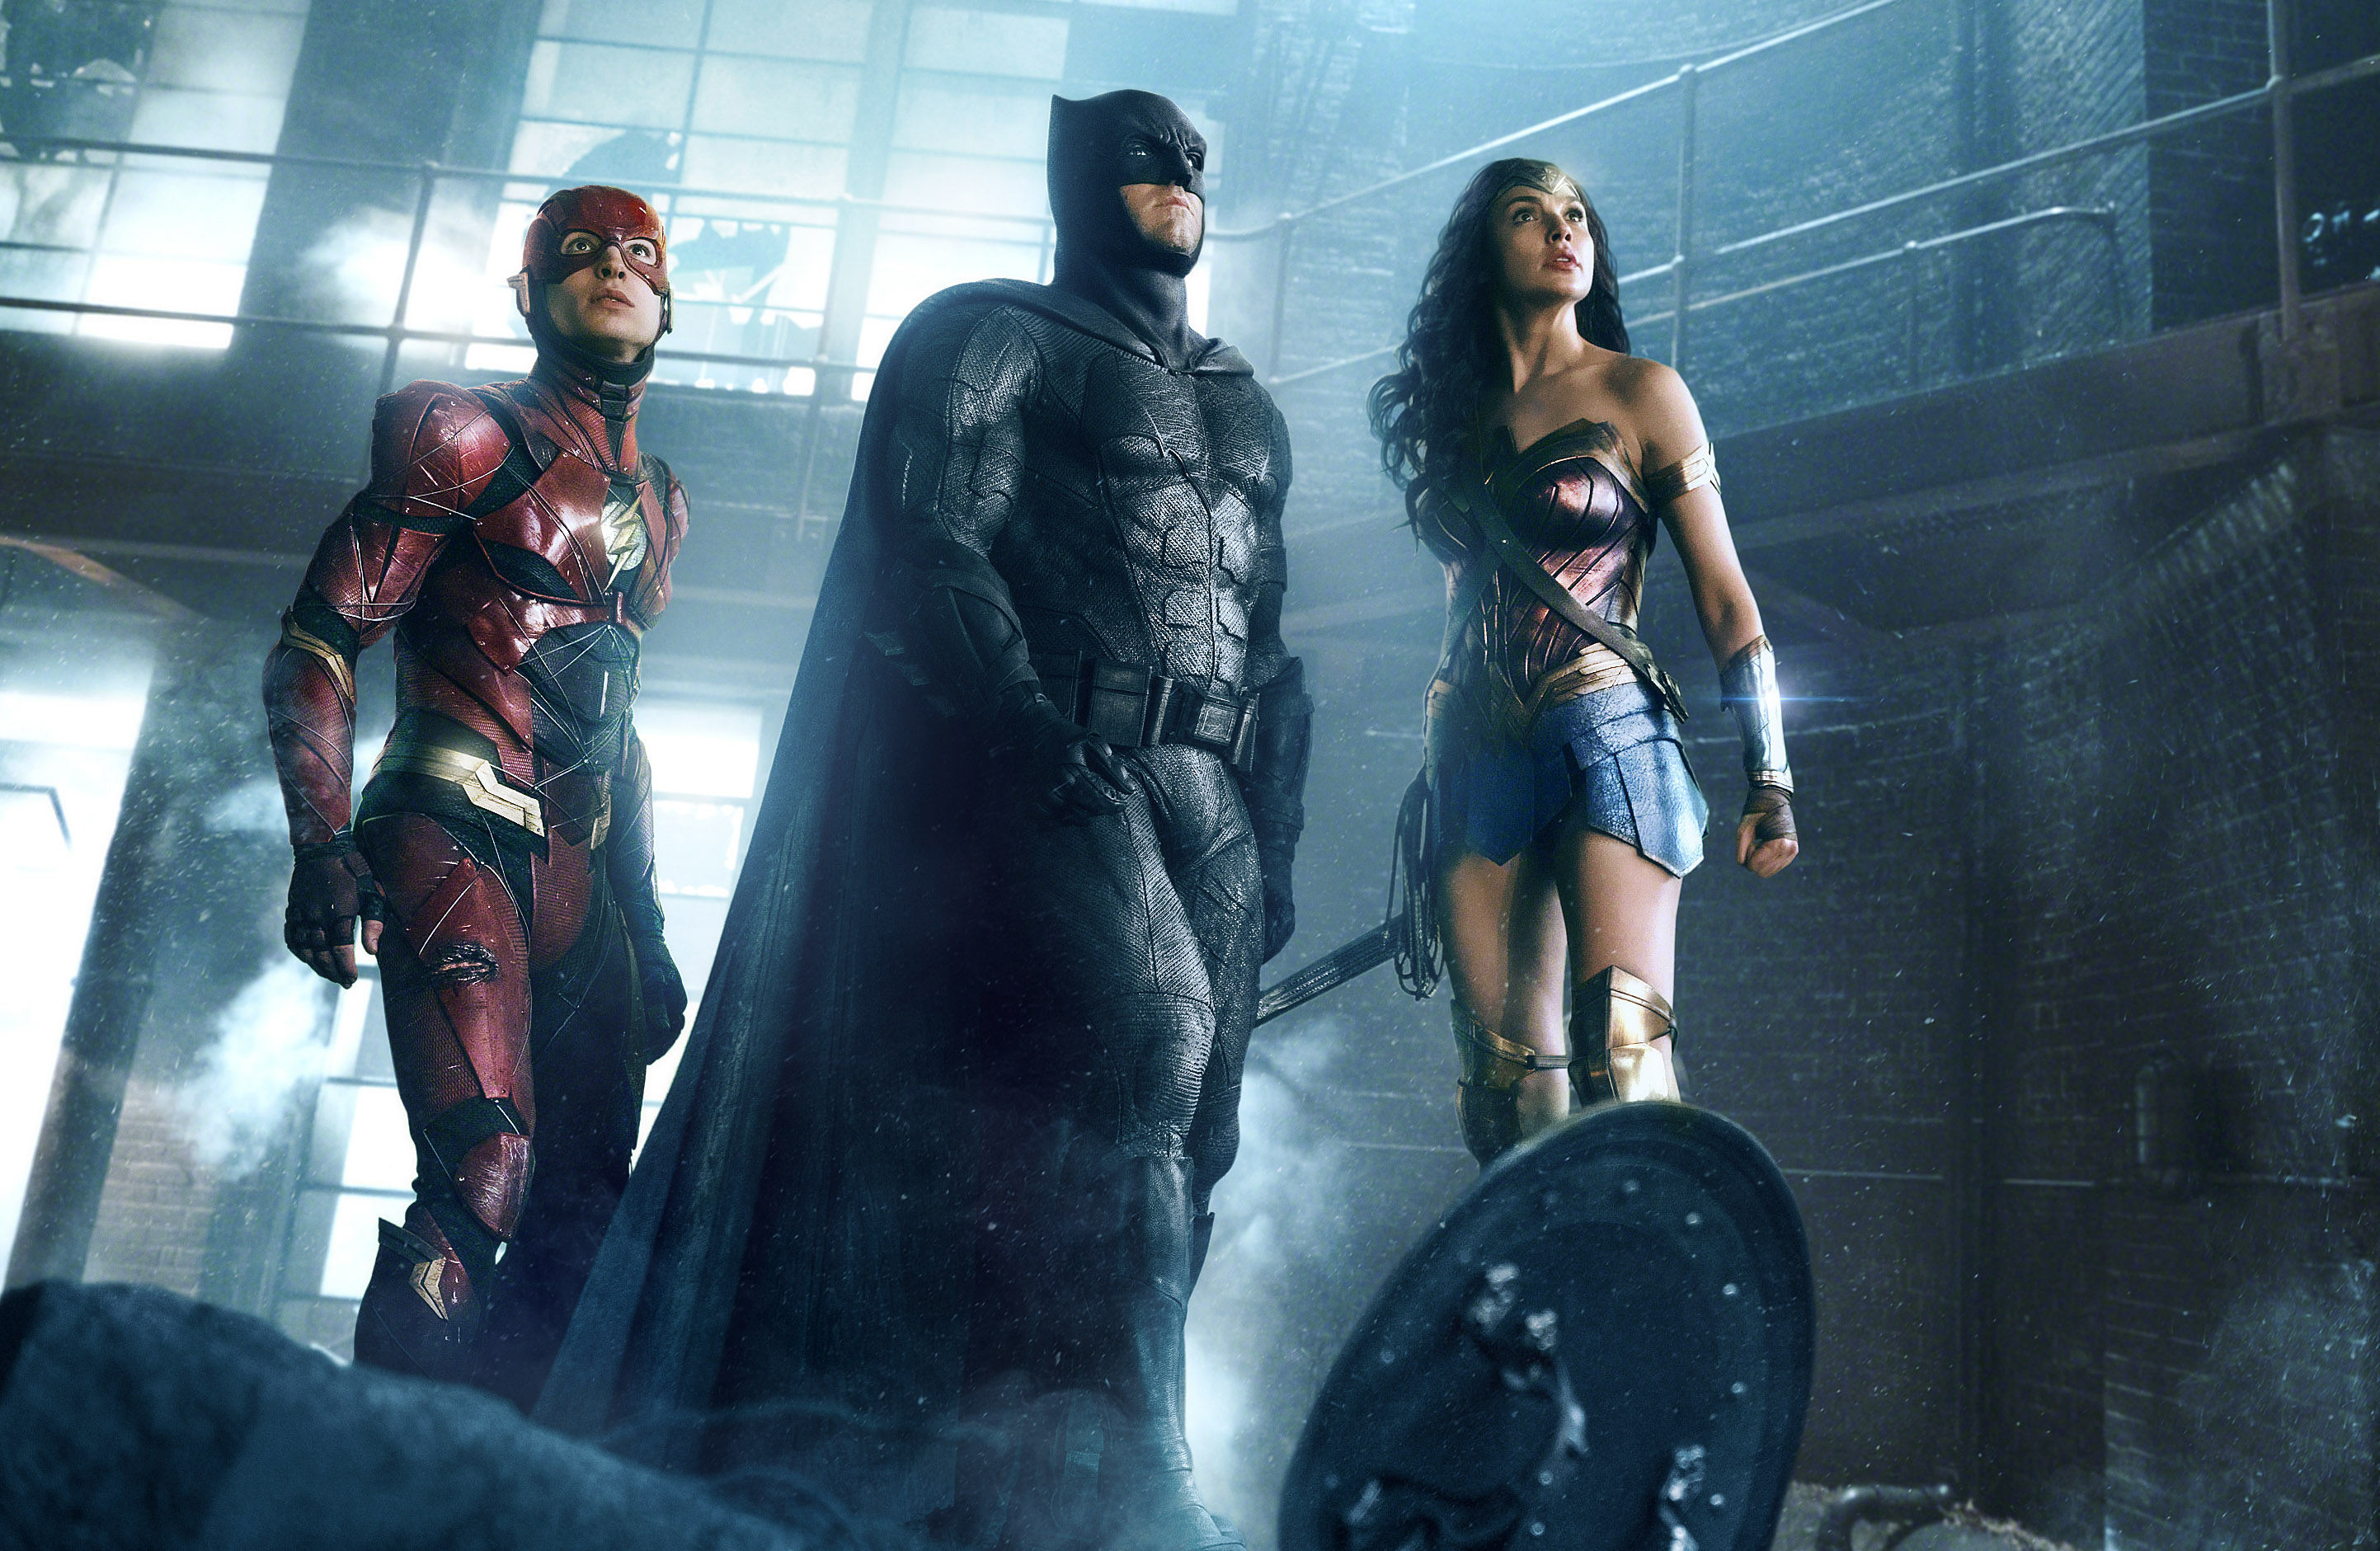 Justice League Movie Said To Undergo Significant Reshoots and Changes